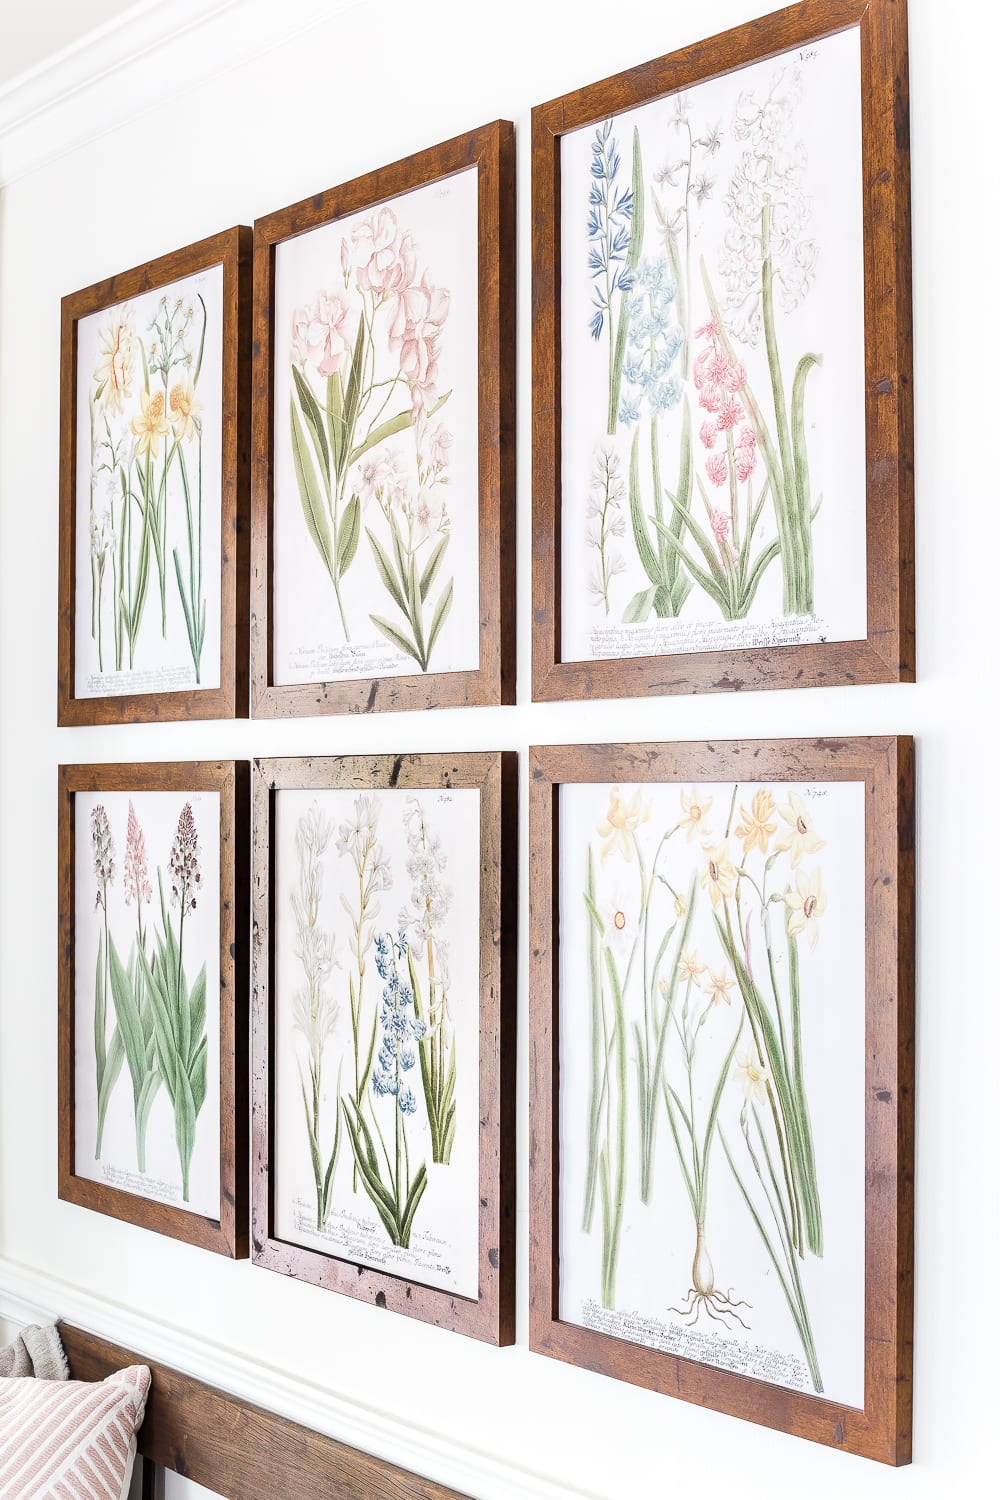 A free printable set of spring botanical art for $3 each on color engineer prints or free from your own printer to frame as wall decor. #gallerywall #springdecor #springprintable #freeprintable #freeart